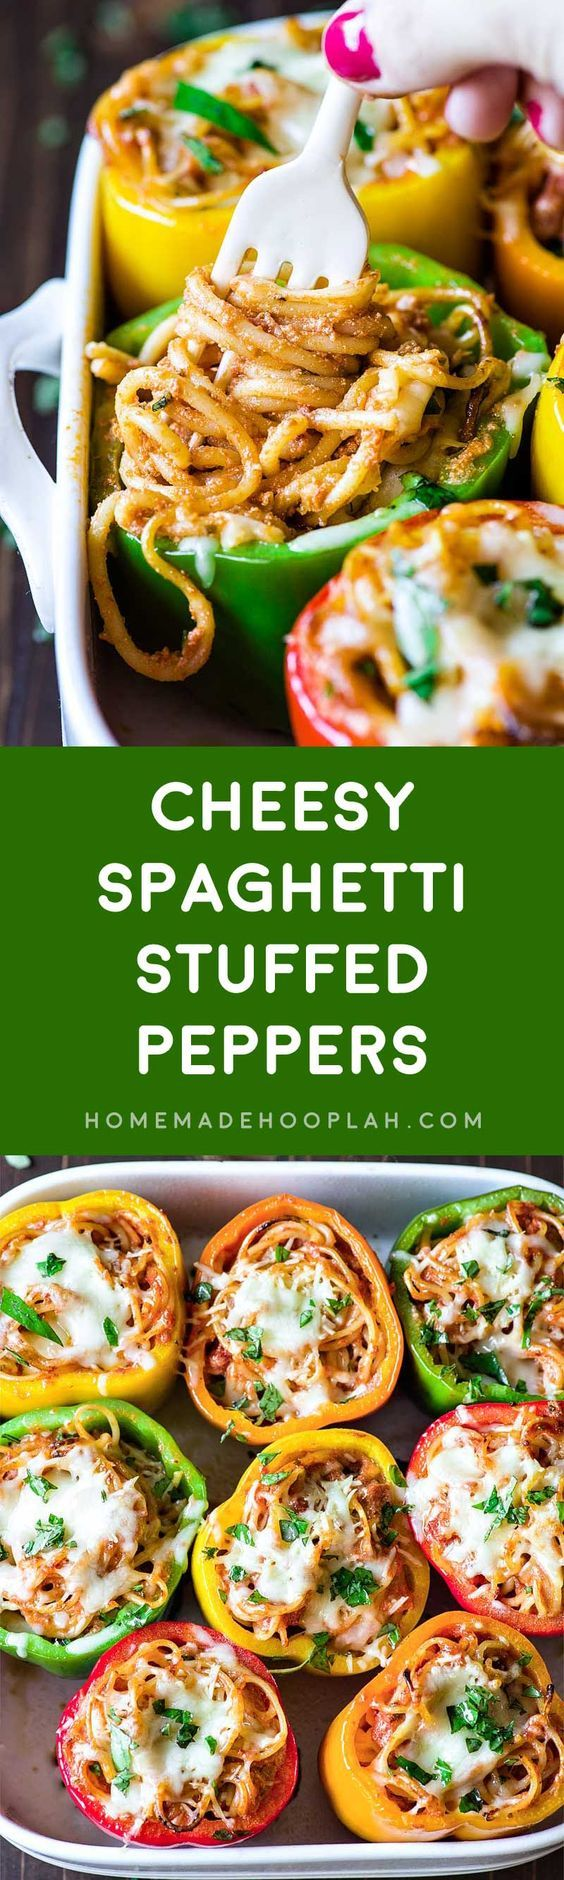 Cheesy Spaghetti Stuffed Peppers! Tender Italian stuffed peppers filled with spaghetti, ricotta, parmesan, and Ragu Homestyle Thick and Hearty Four Cheese Sauce. | HomemadeHooplah.com #AD #SimmeredinTradition